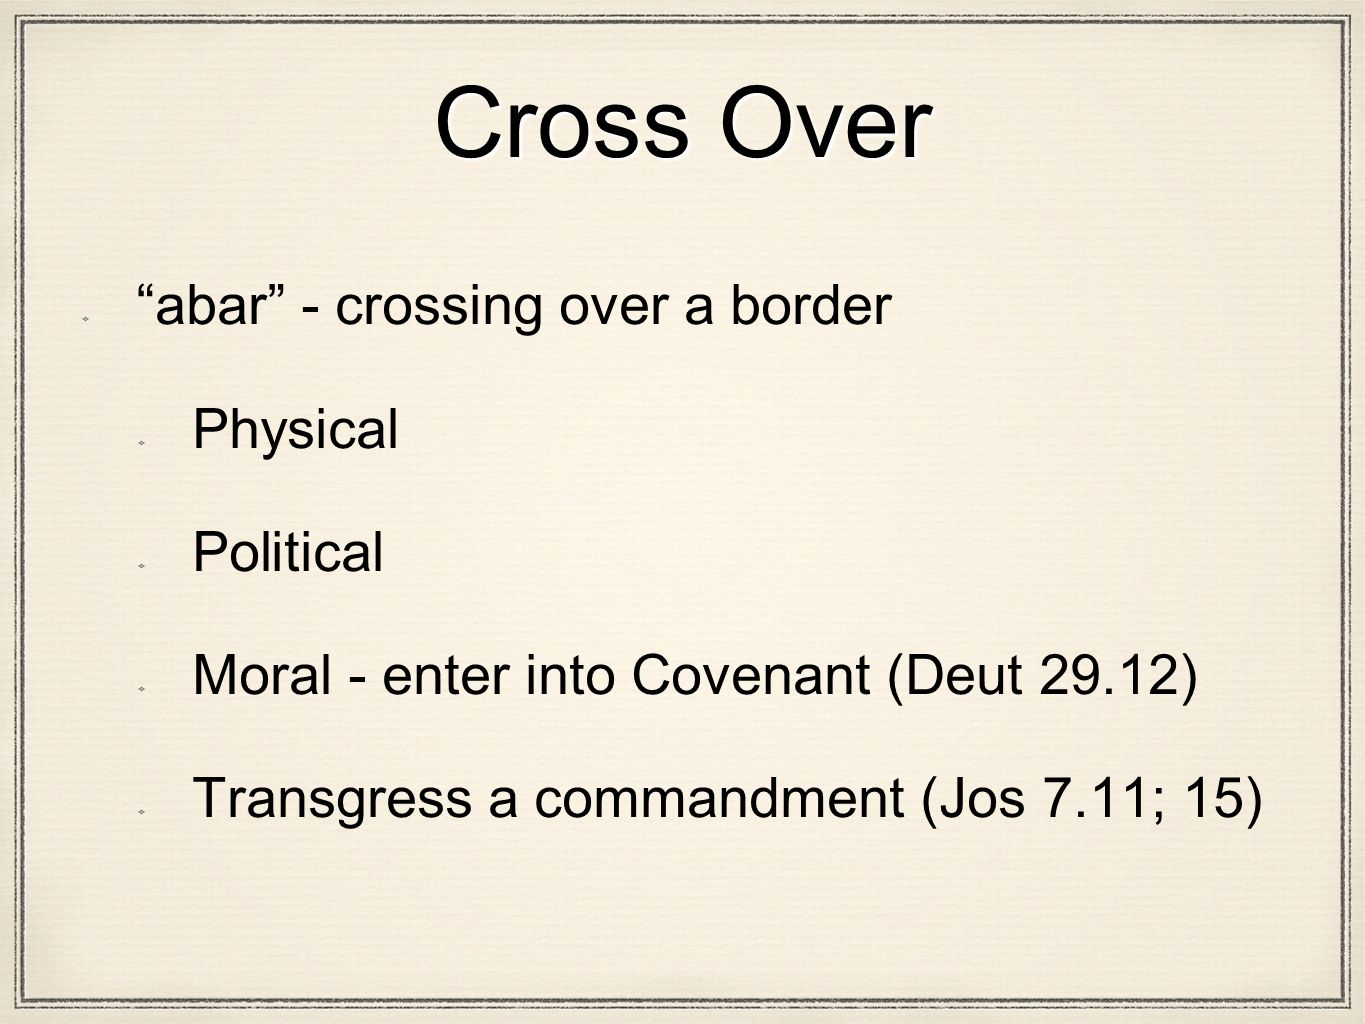 Cross Over abar - crossing over a border Physical Political Moral - enter into Covenant (Deut 29.12) Transgress a commandment (Jos 7.11; 15)